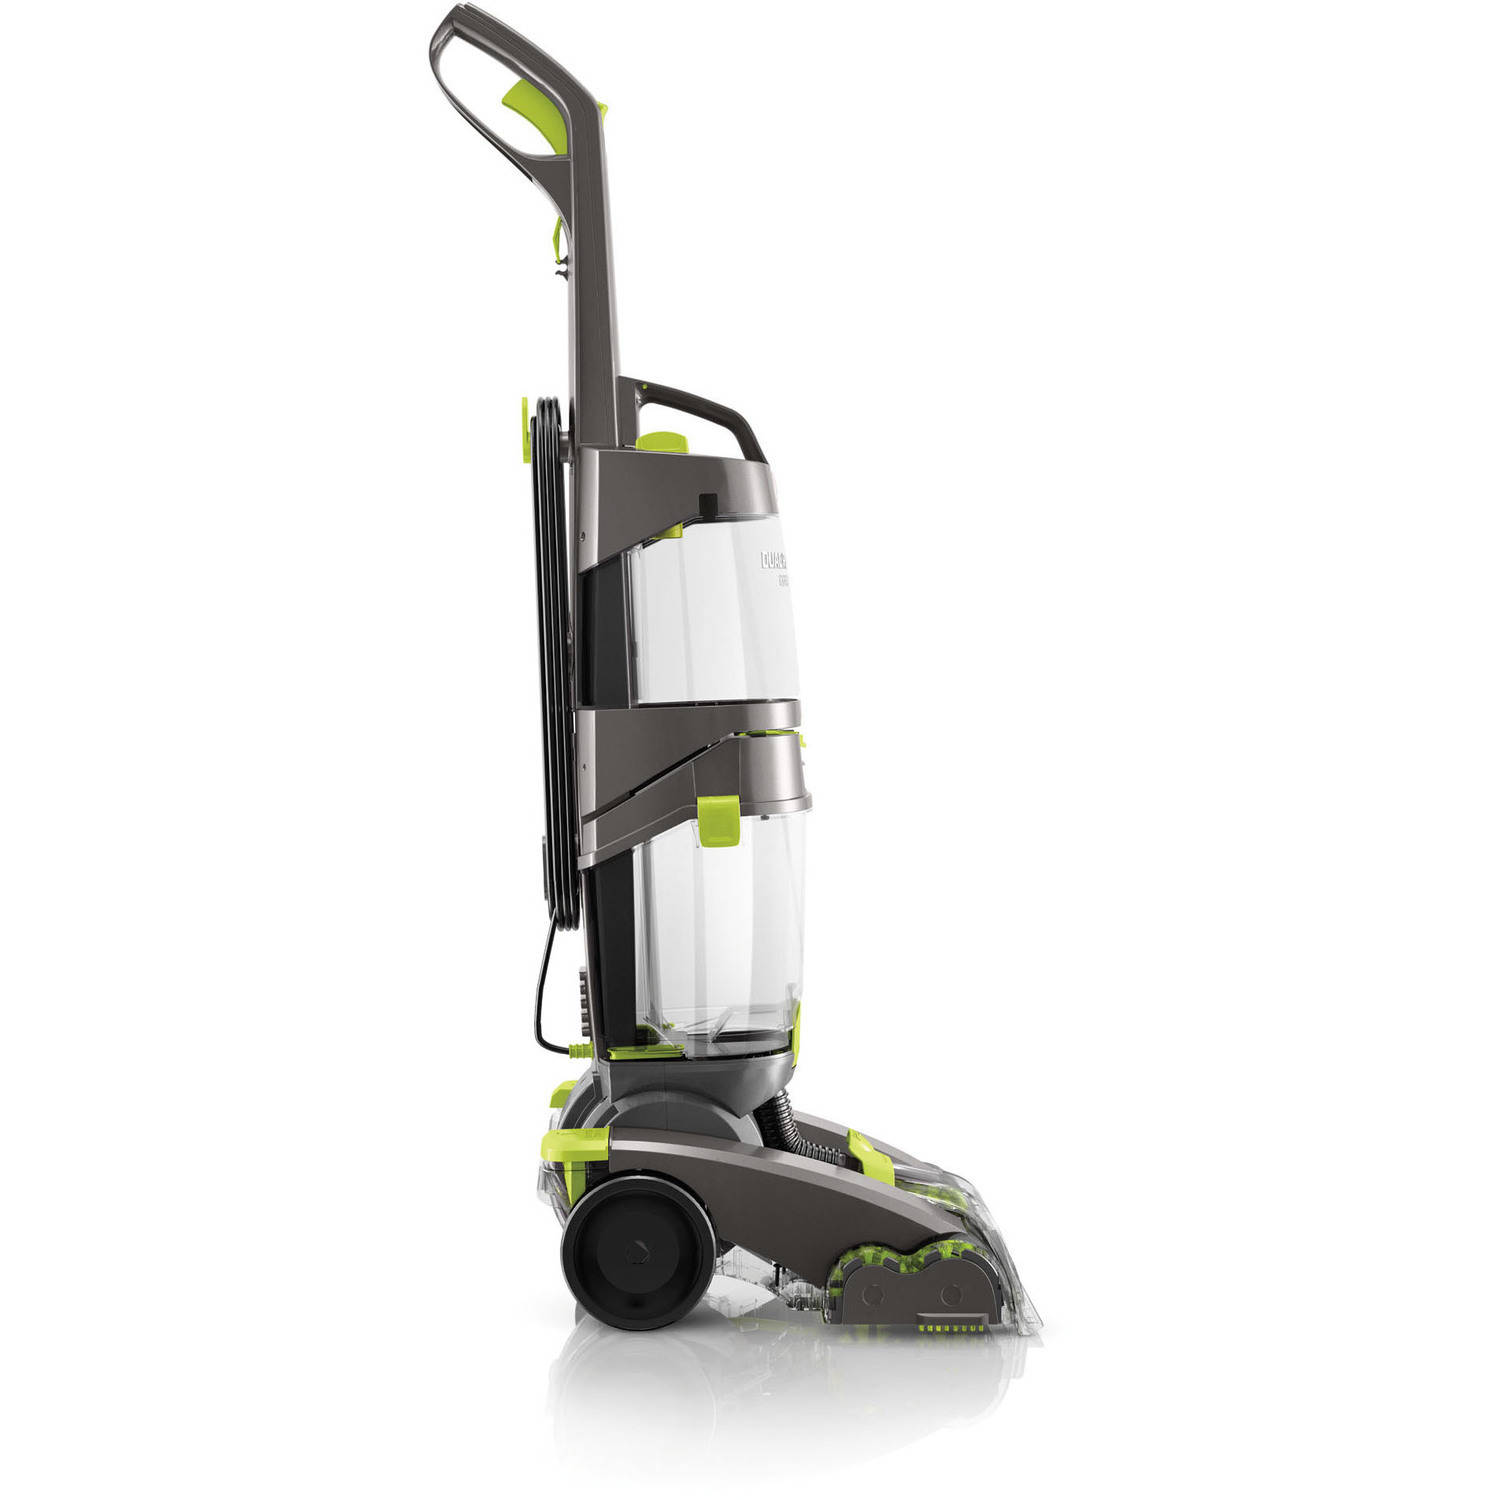 Hoover Dual Power Max Carpet Cleaner Manual Review